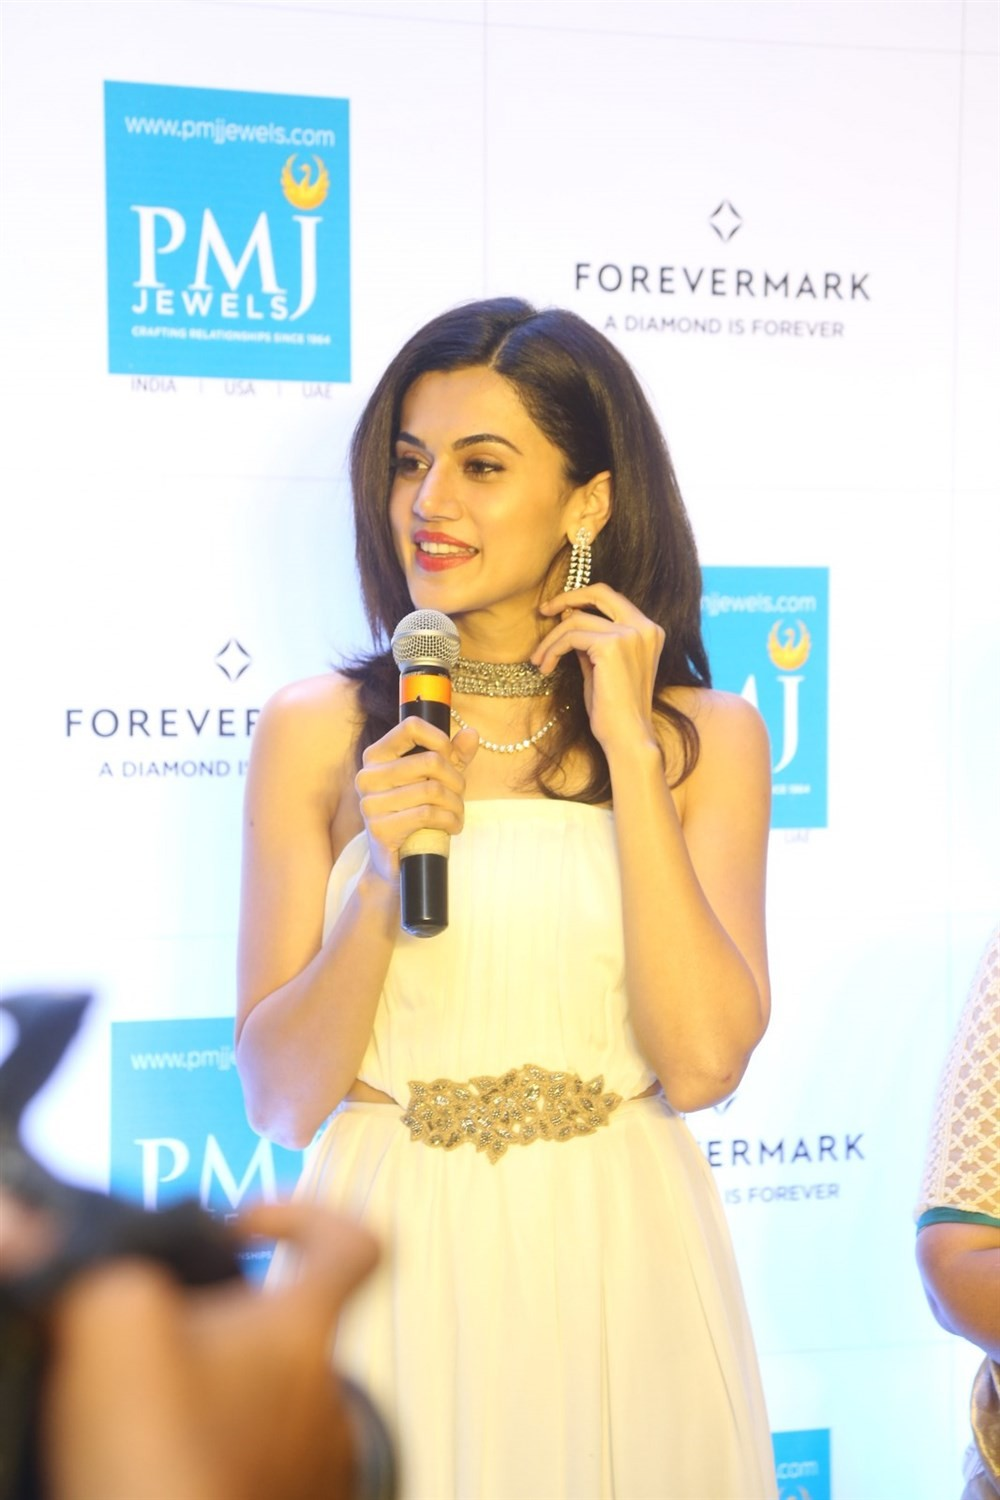 Taapsee Pannu,actress Taapsee Pannu,Forevermark diamond collection,Taapsee Pannu at Forevermark diamond collection,Taapsee Pannu hot pics,Taapsee Pannu hot images,Taapsee Pannu hot stills,Taapsee Pannu hot pictures